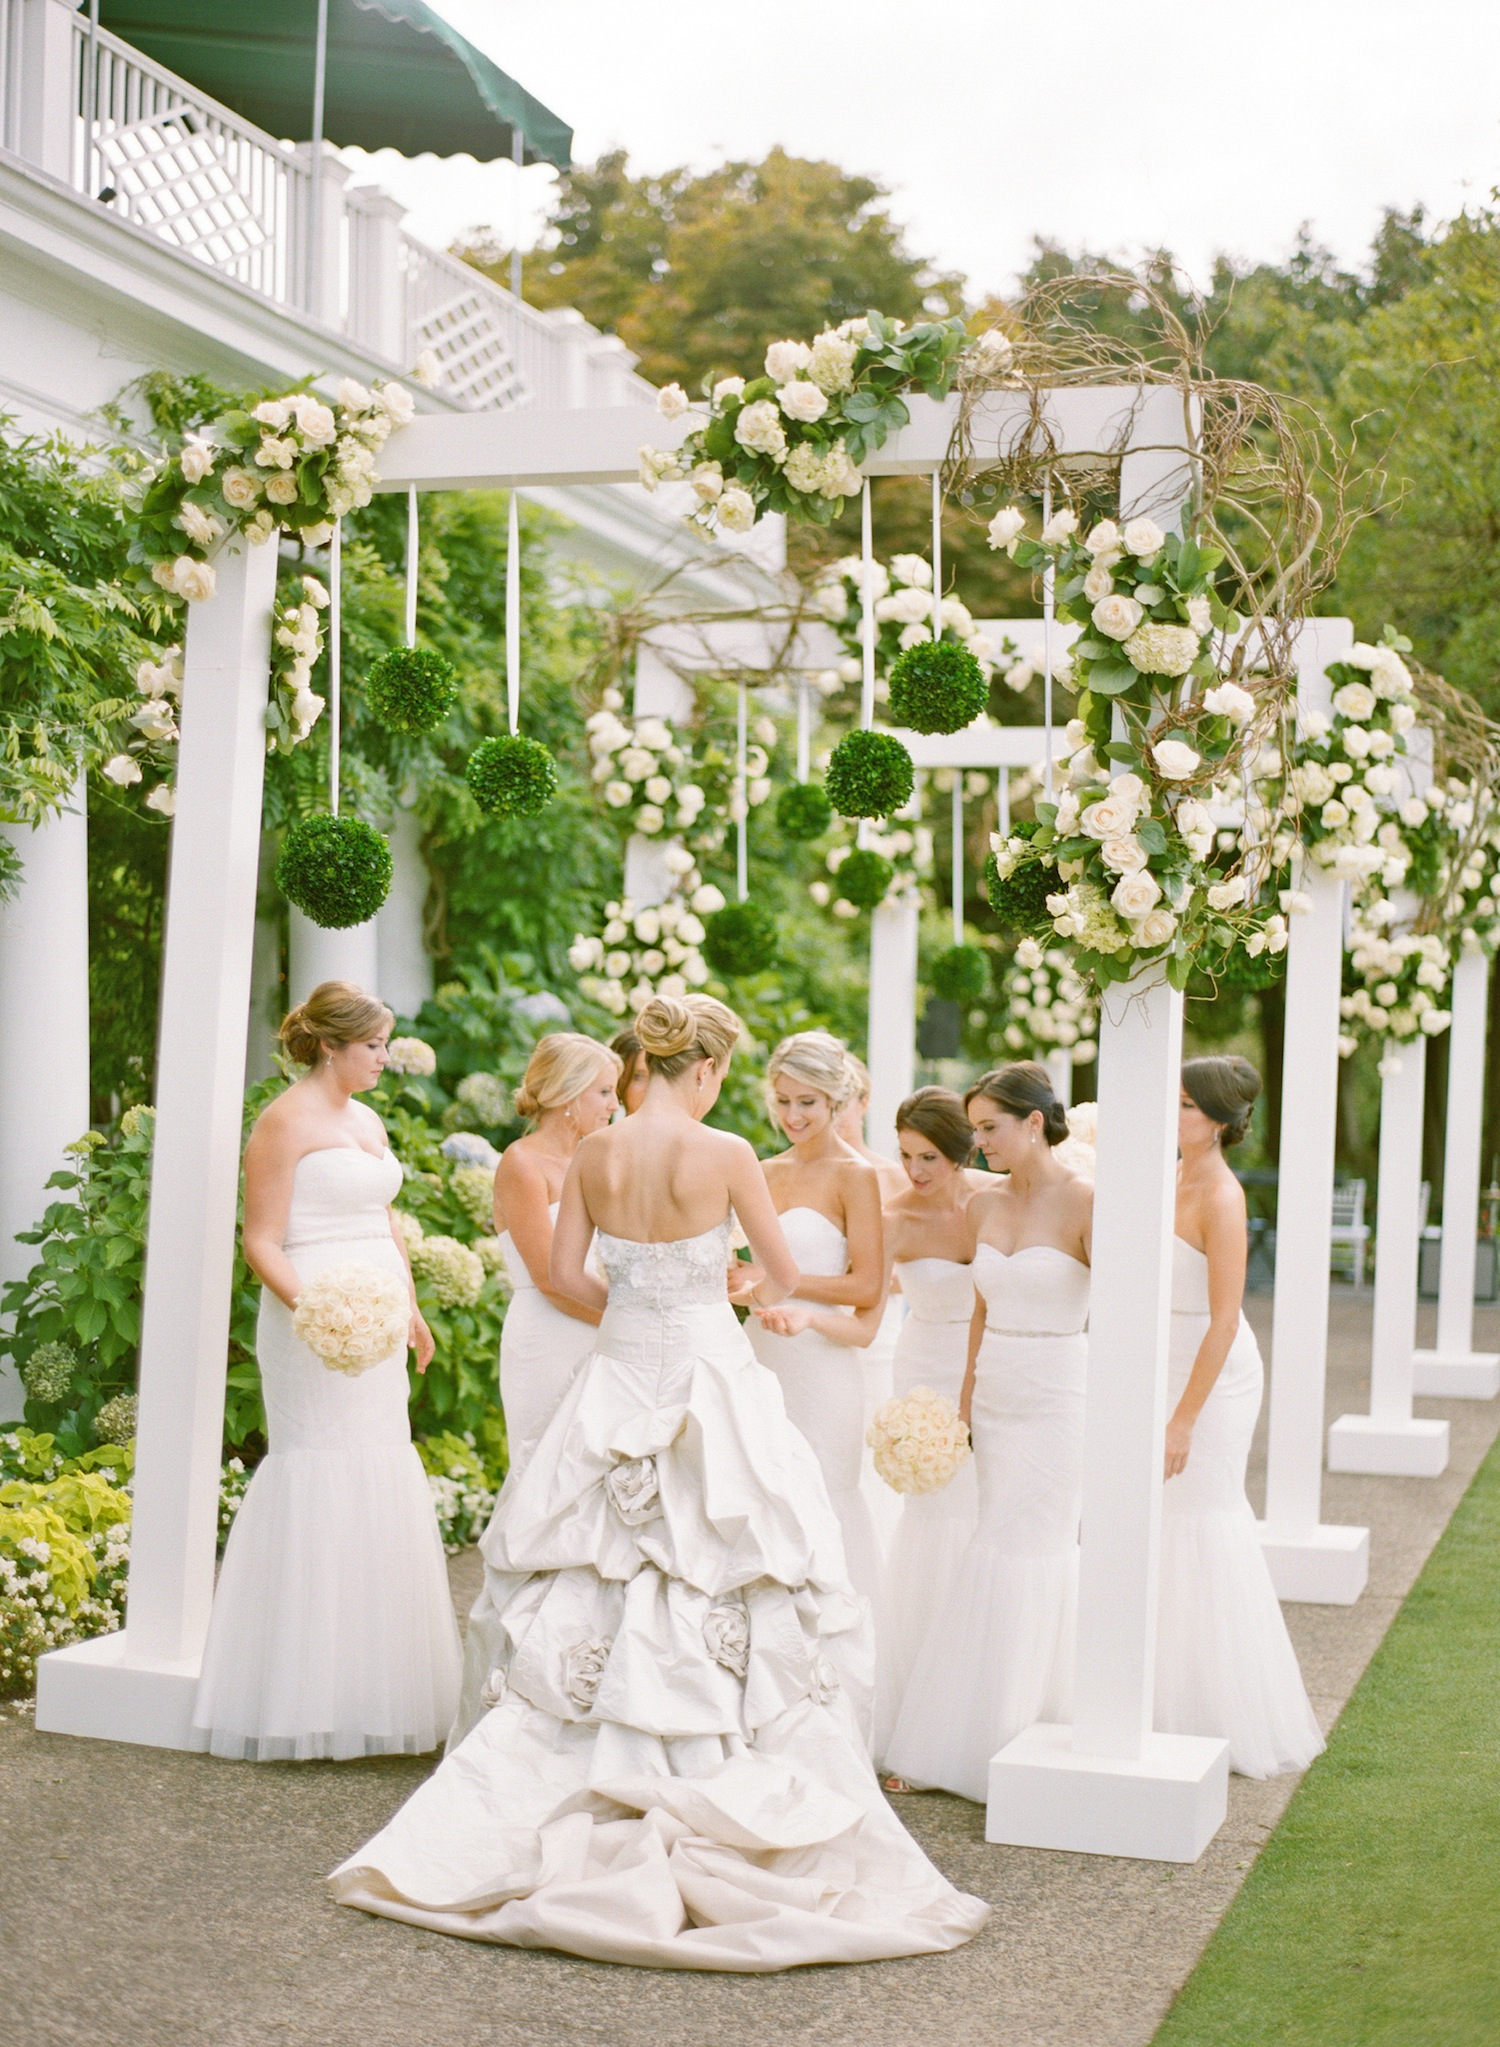 Pantone's 2017 Color of the Year Greenery inspiration Bride and bridesmaids getting ready to walk down aisle outdoor ceremony